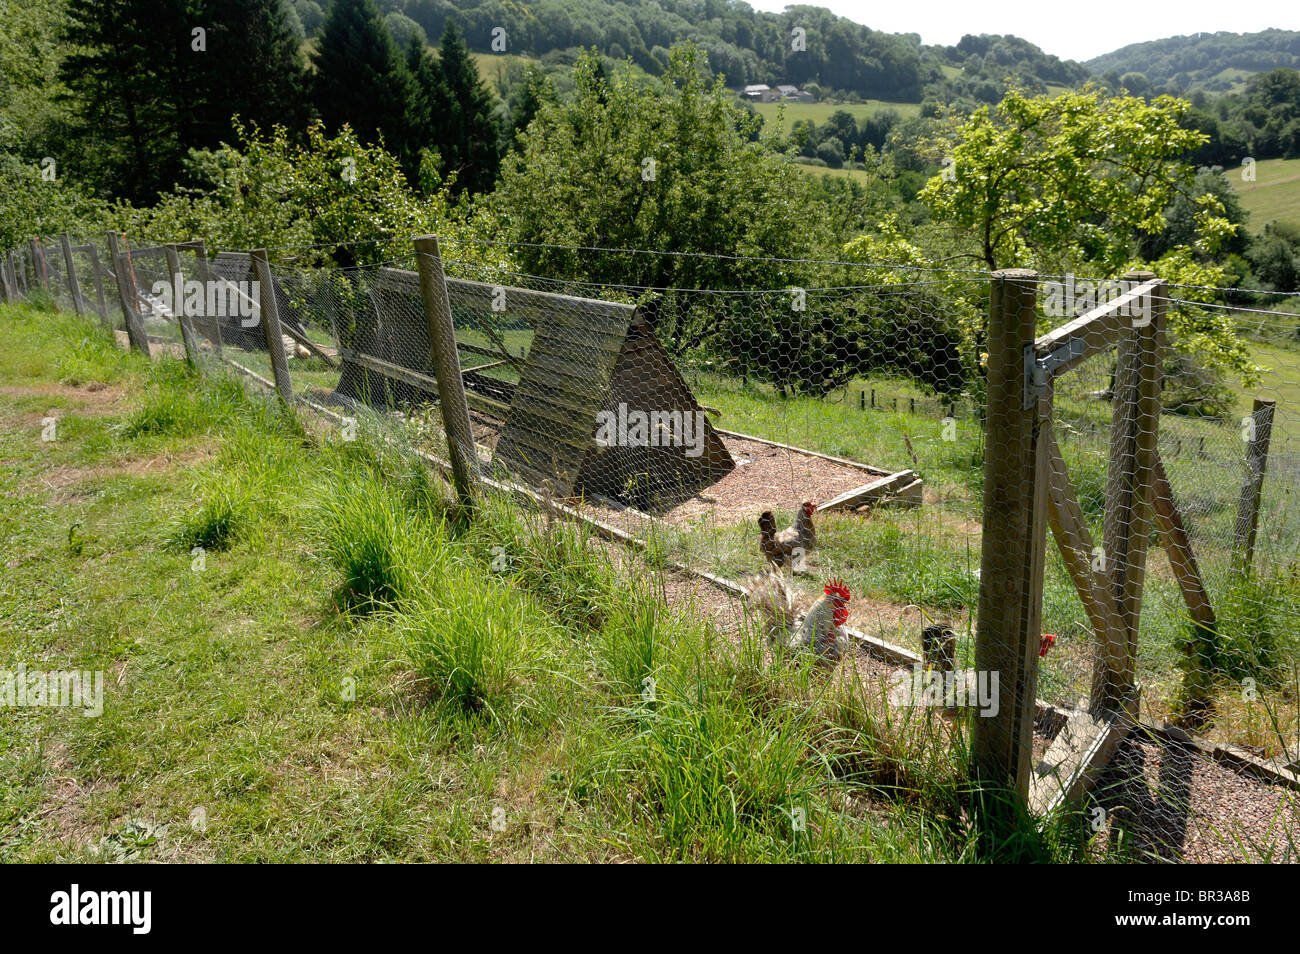 Pictureque domestic chicken runs and houses in a rural setting, Devon - Stock Image